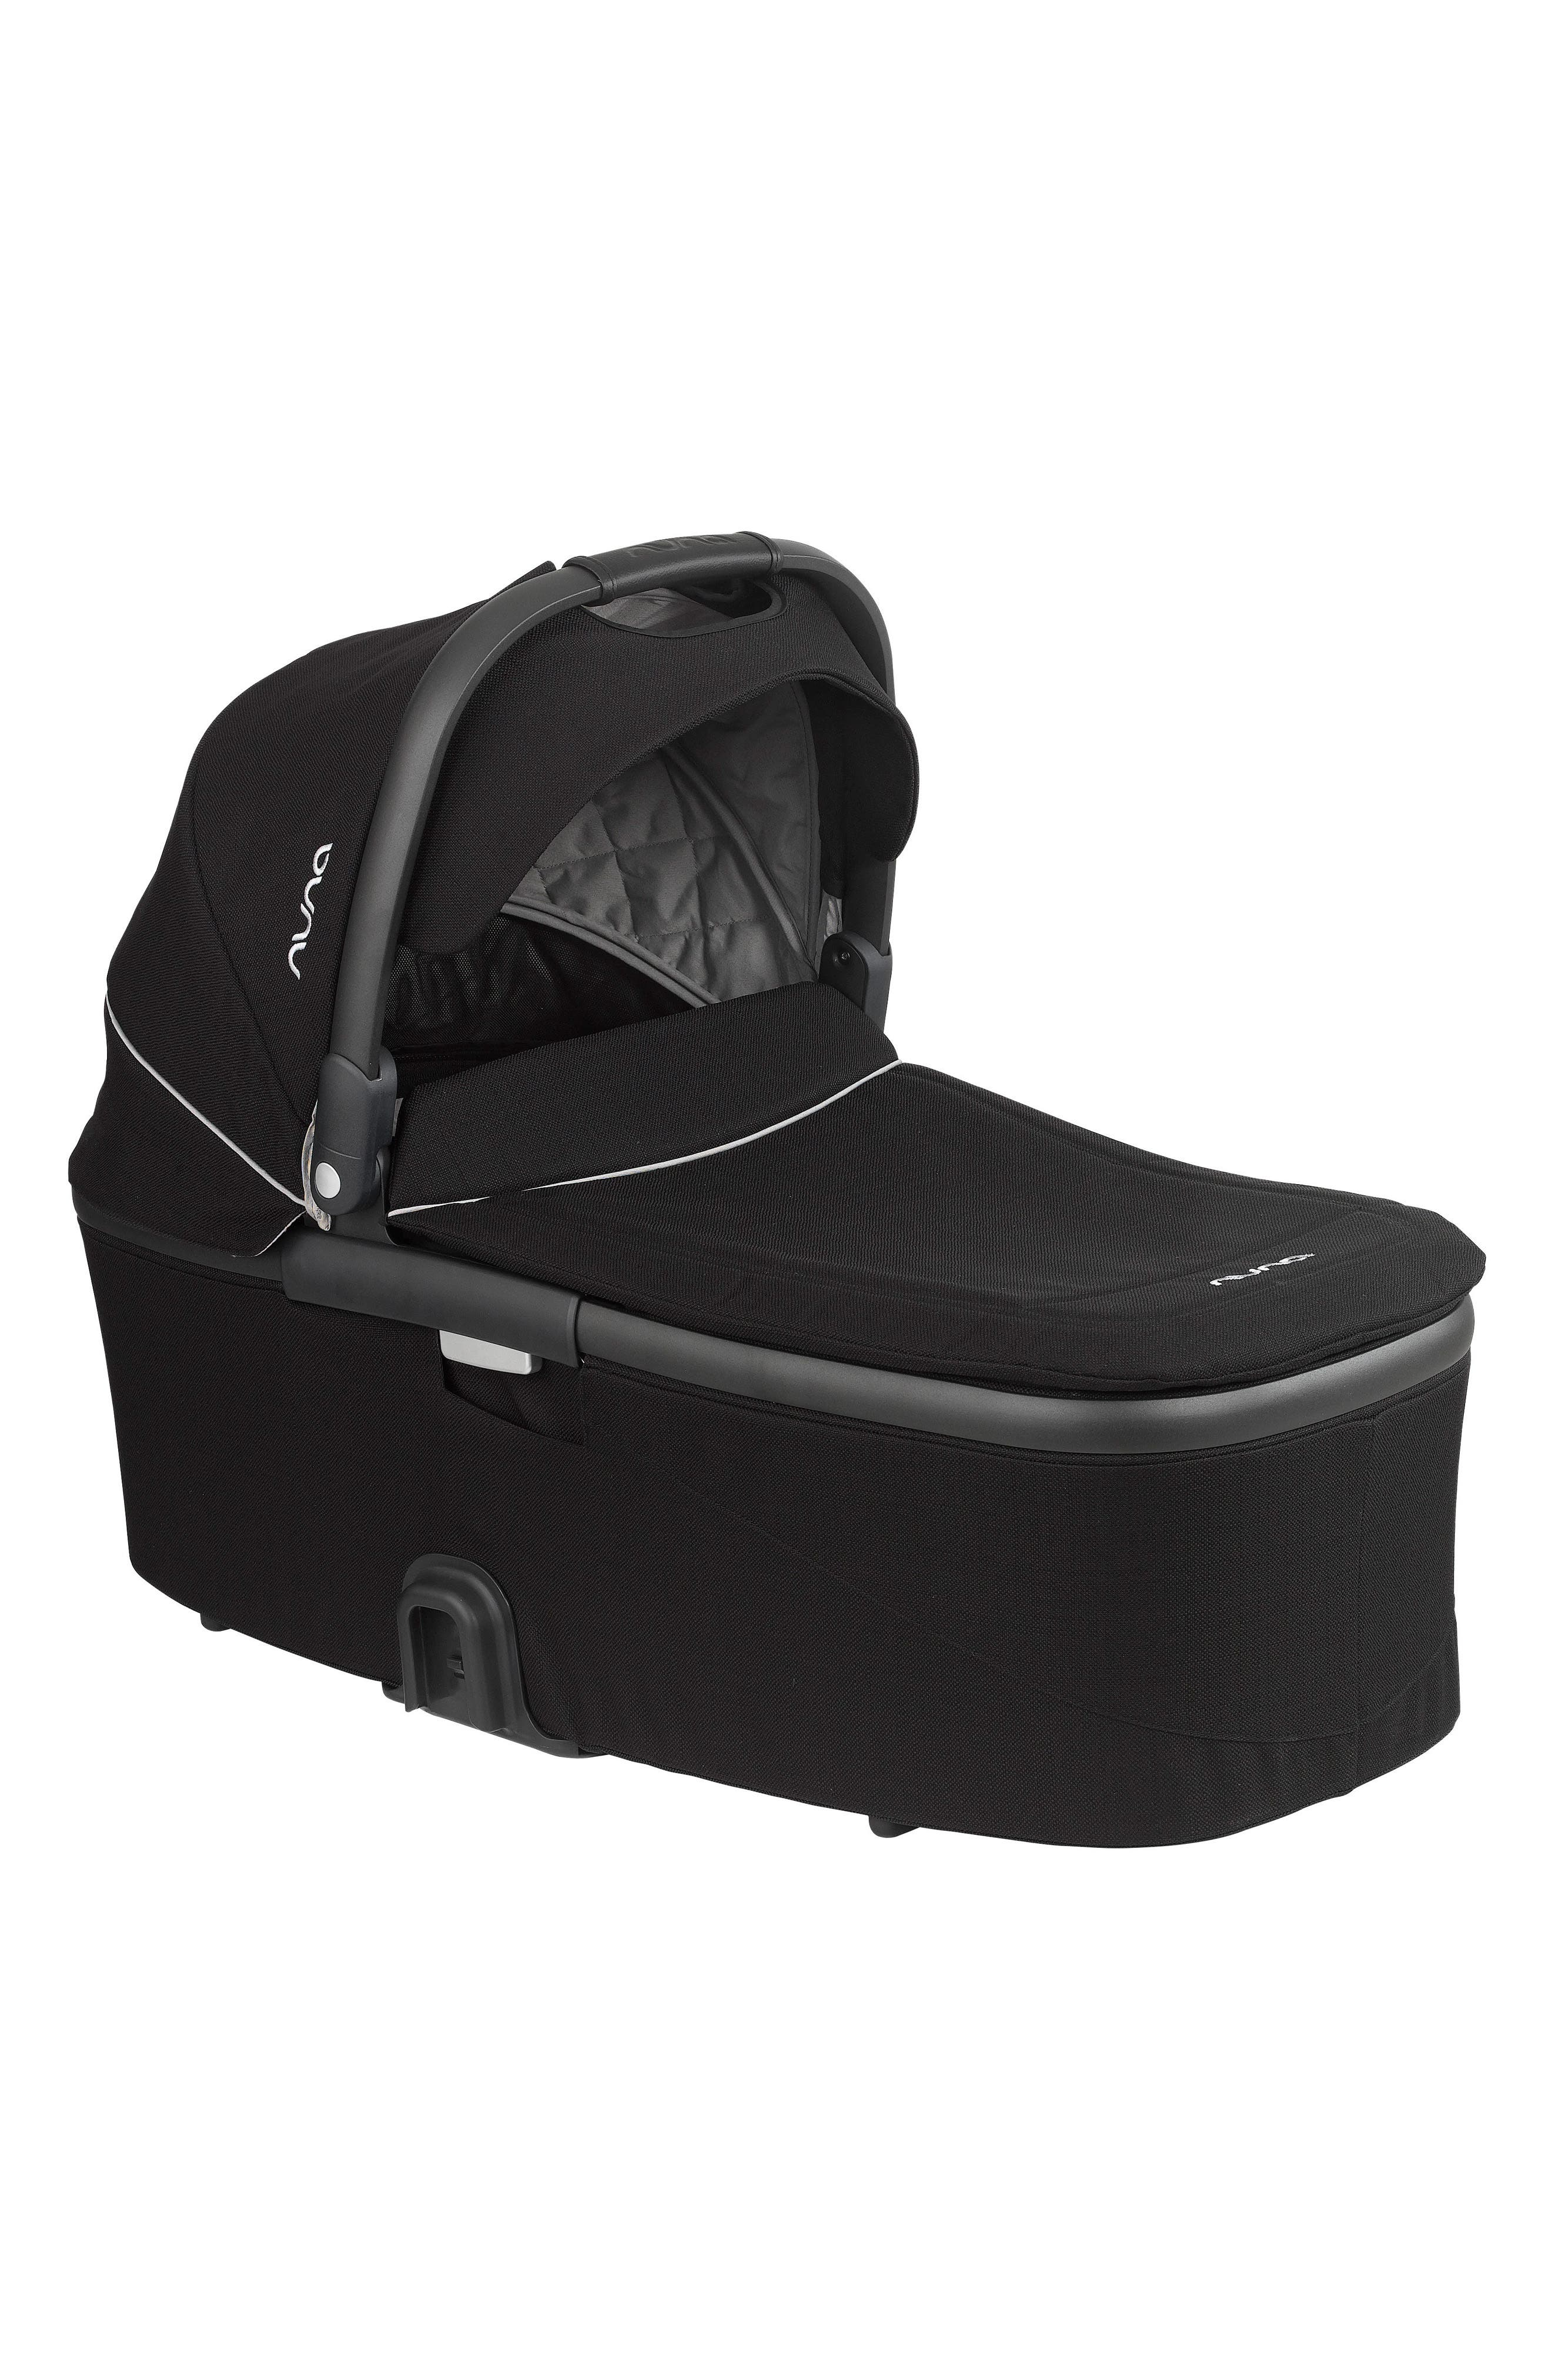 MIXX Bassinet for nuna MIXX Stroller,                             Main thumbnail 1, color,                             001